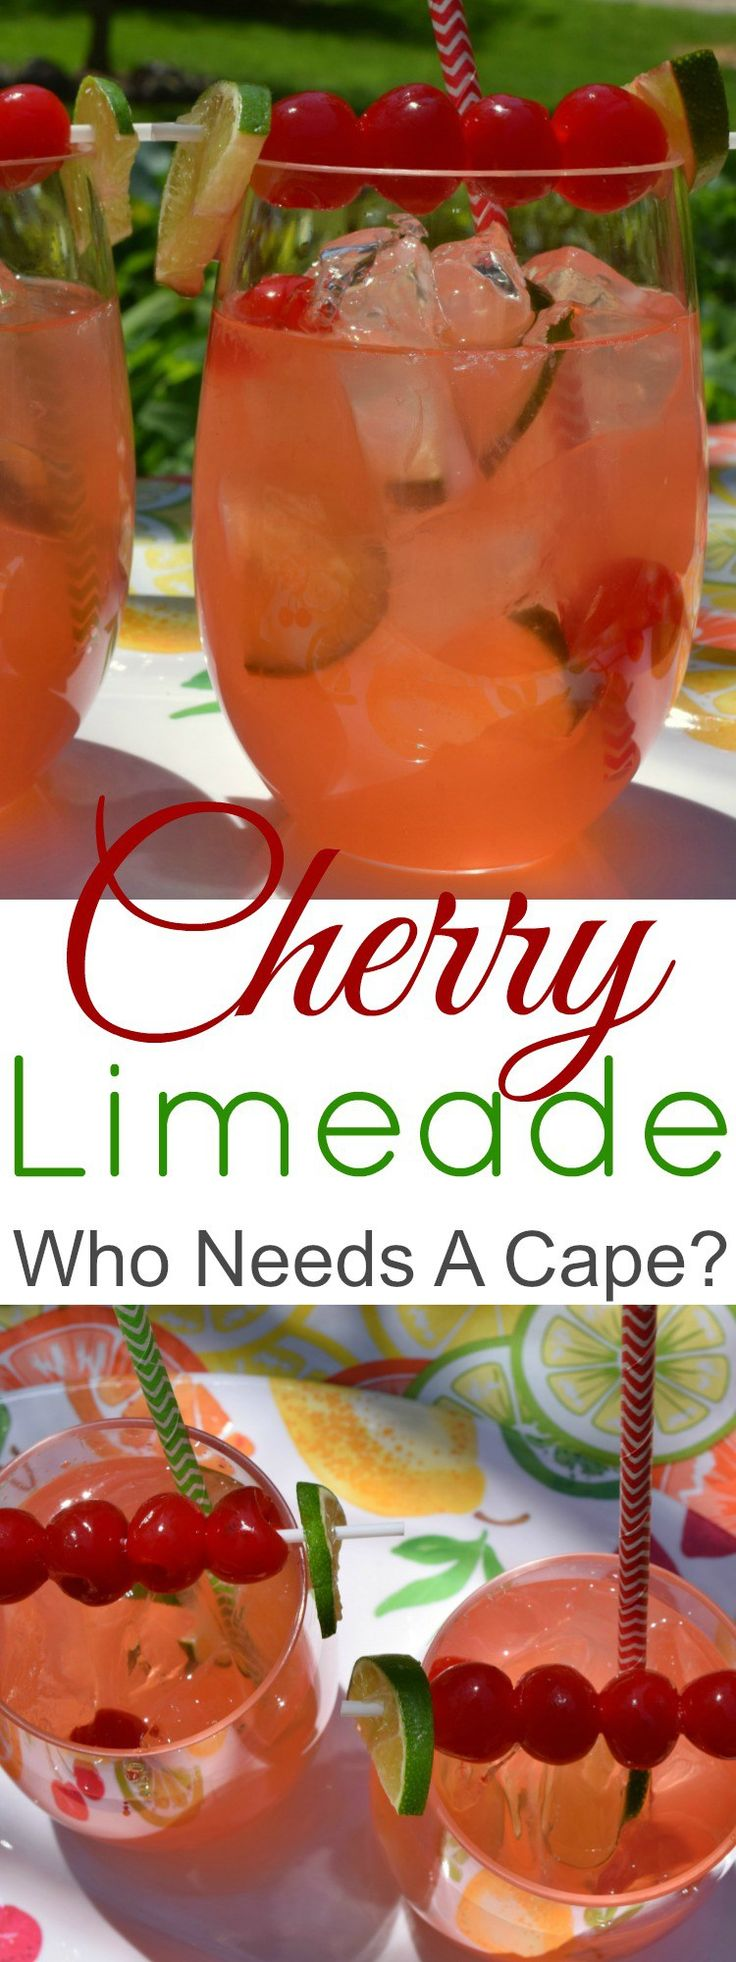 Make a big pitcher of our family favorite Cherry Limeade! Perfect for entertaining and summertime sipping, you'll love the sweet & tart combo. | Who Needs A Cape?